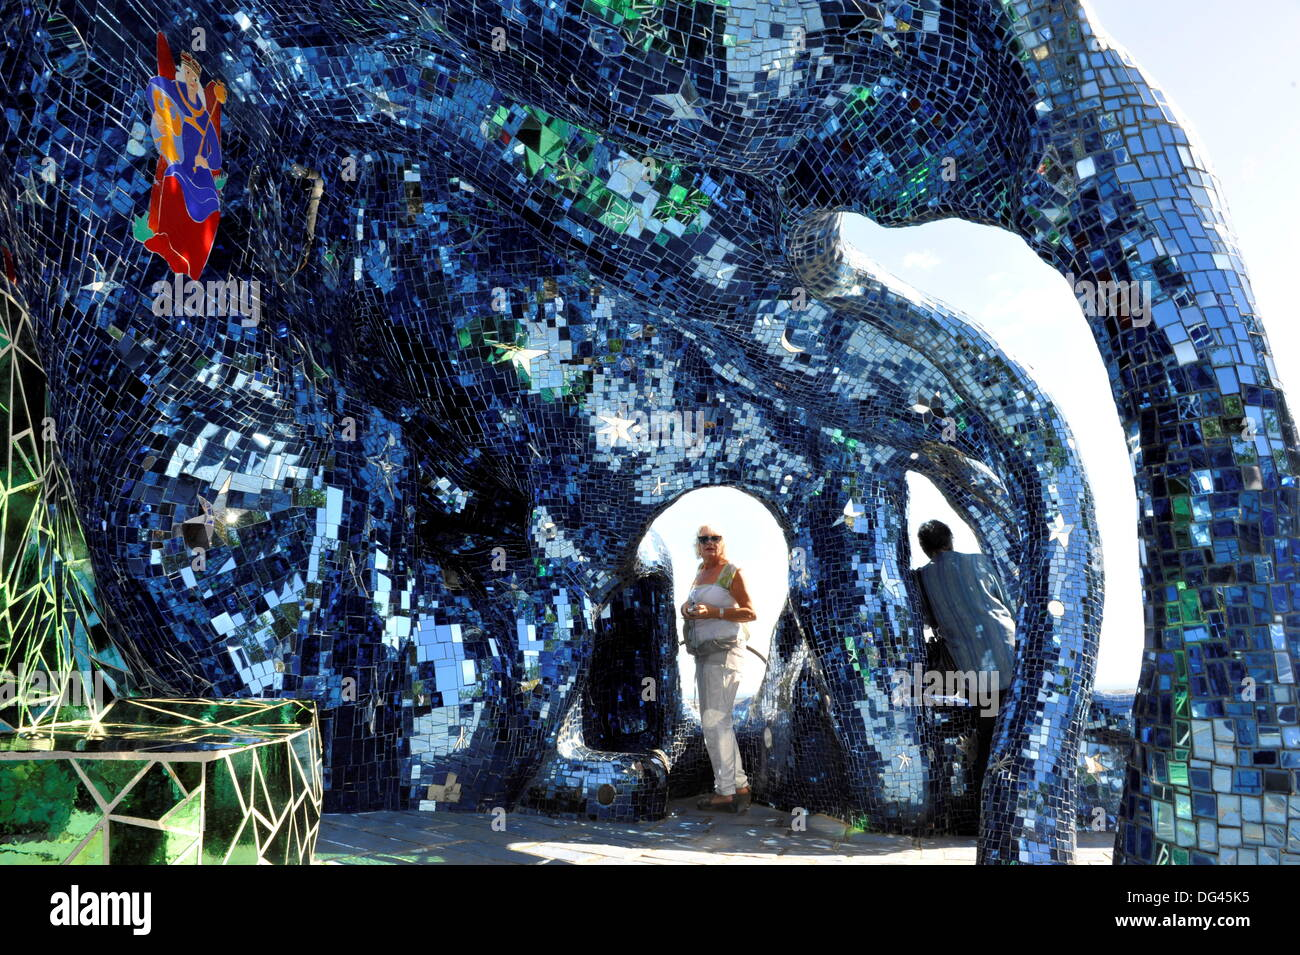 Imaginative sculpture in the tarot garden of the french - Niki de saint phalle tarot garden ...